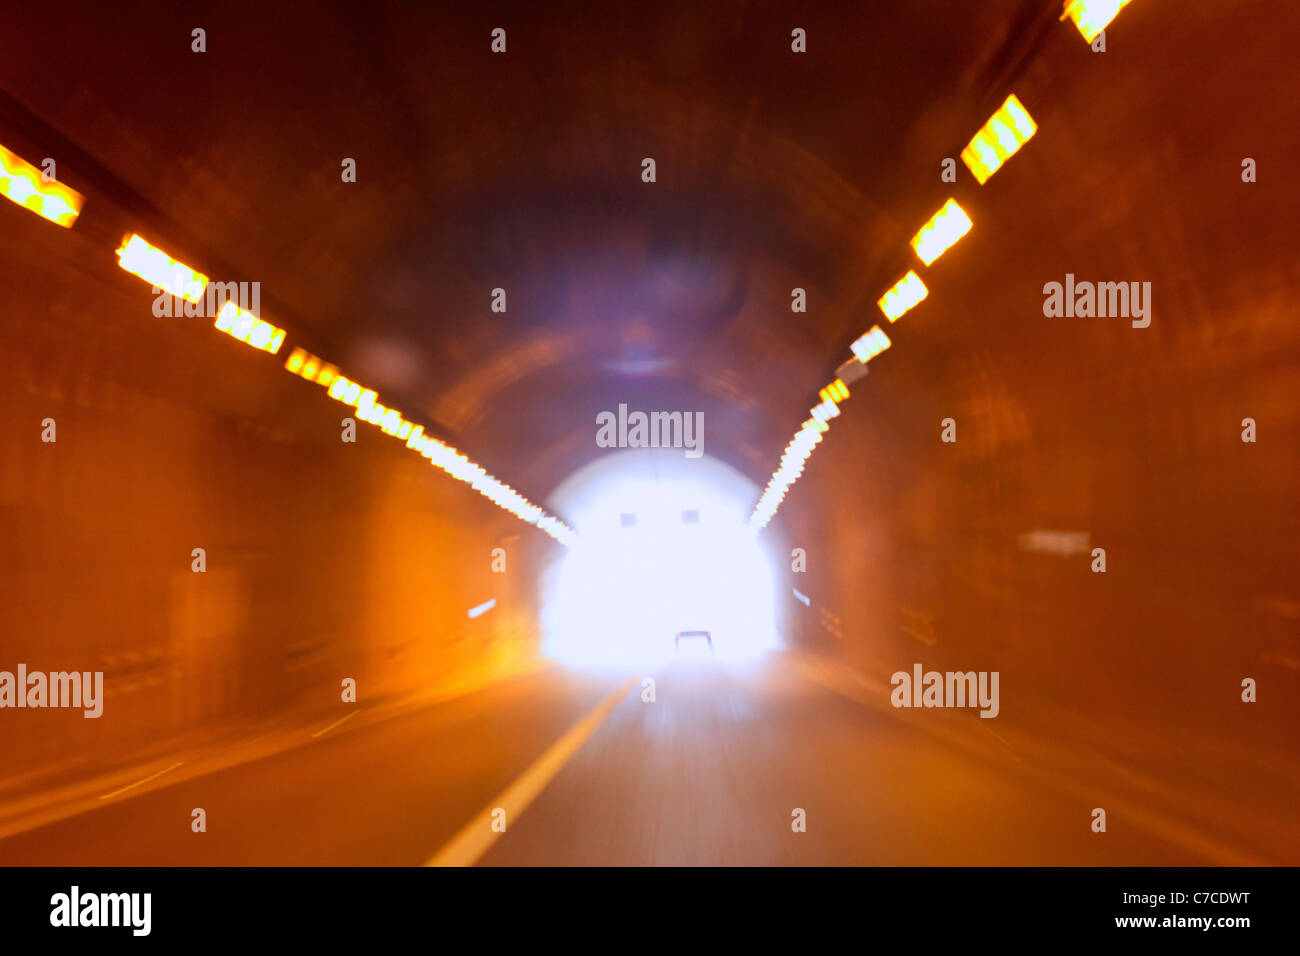 blurred motion tunnel like driving drunk metaphor with light at the end - Stock Image